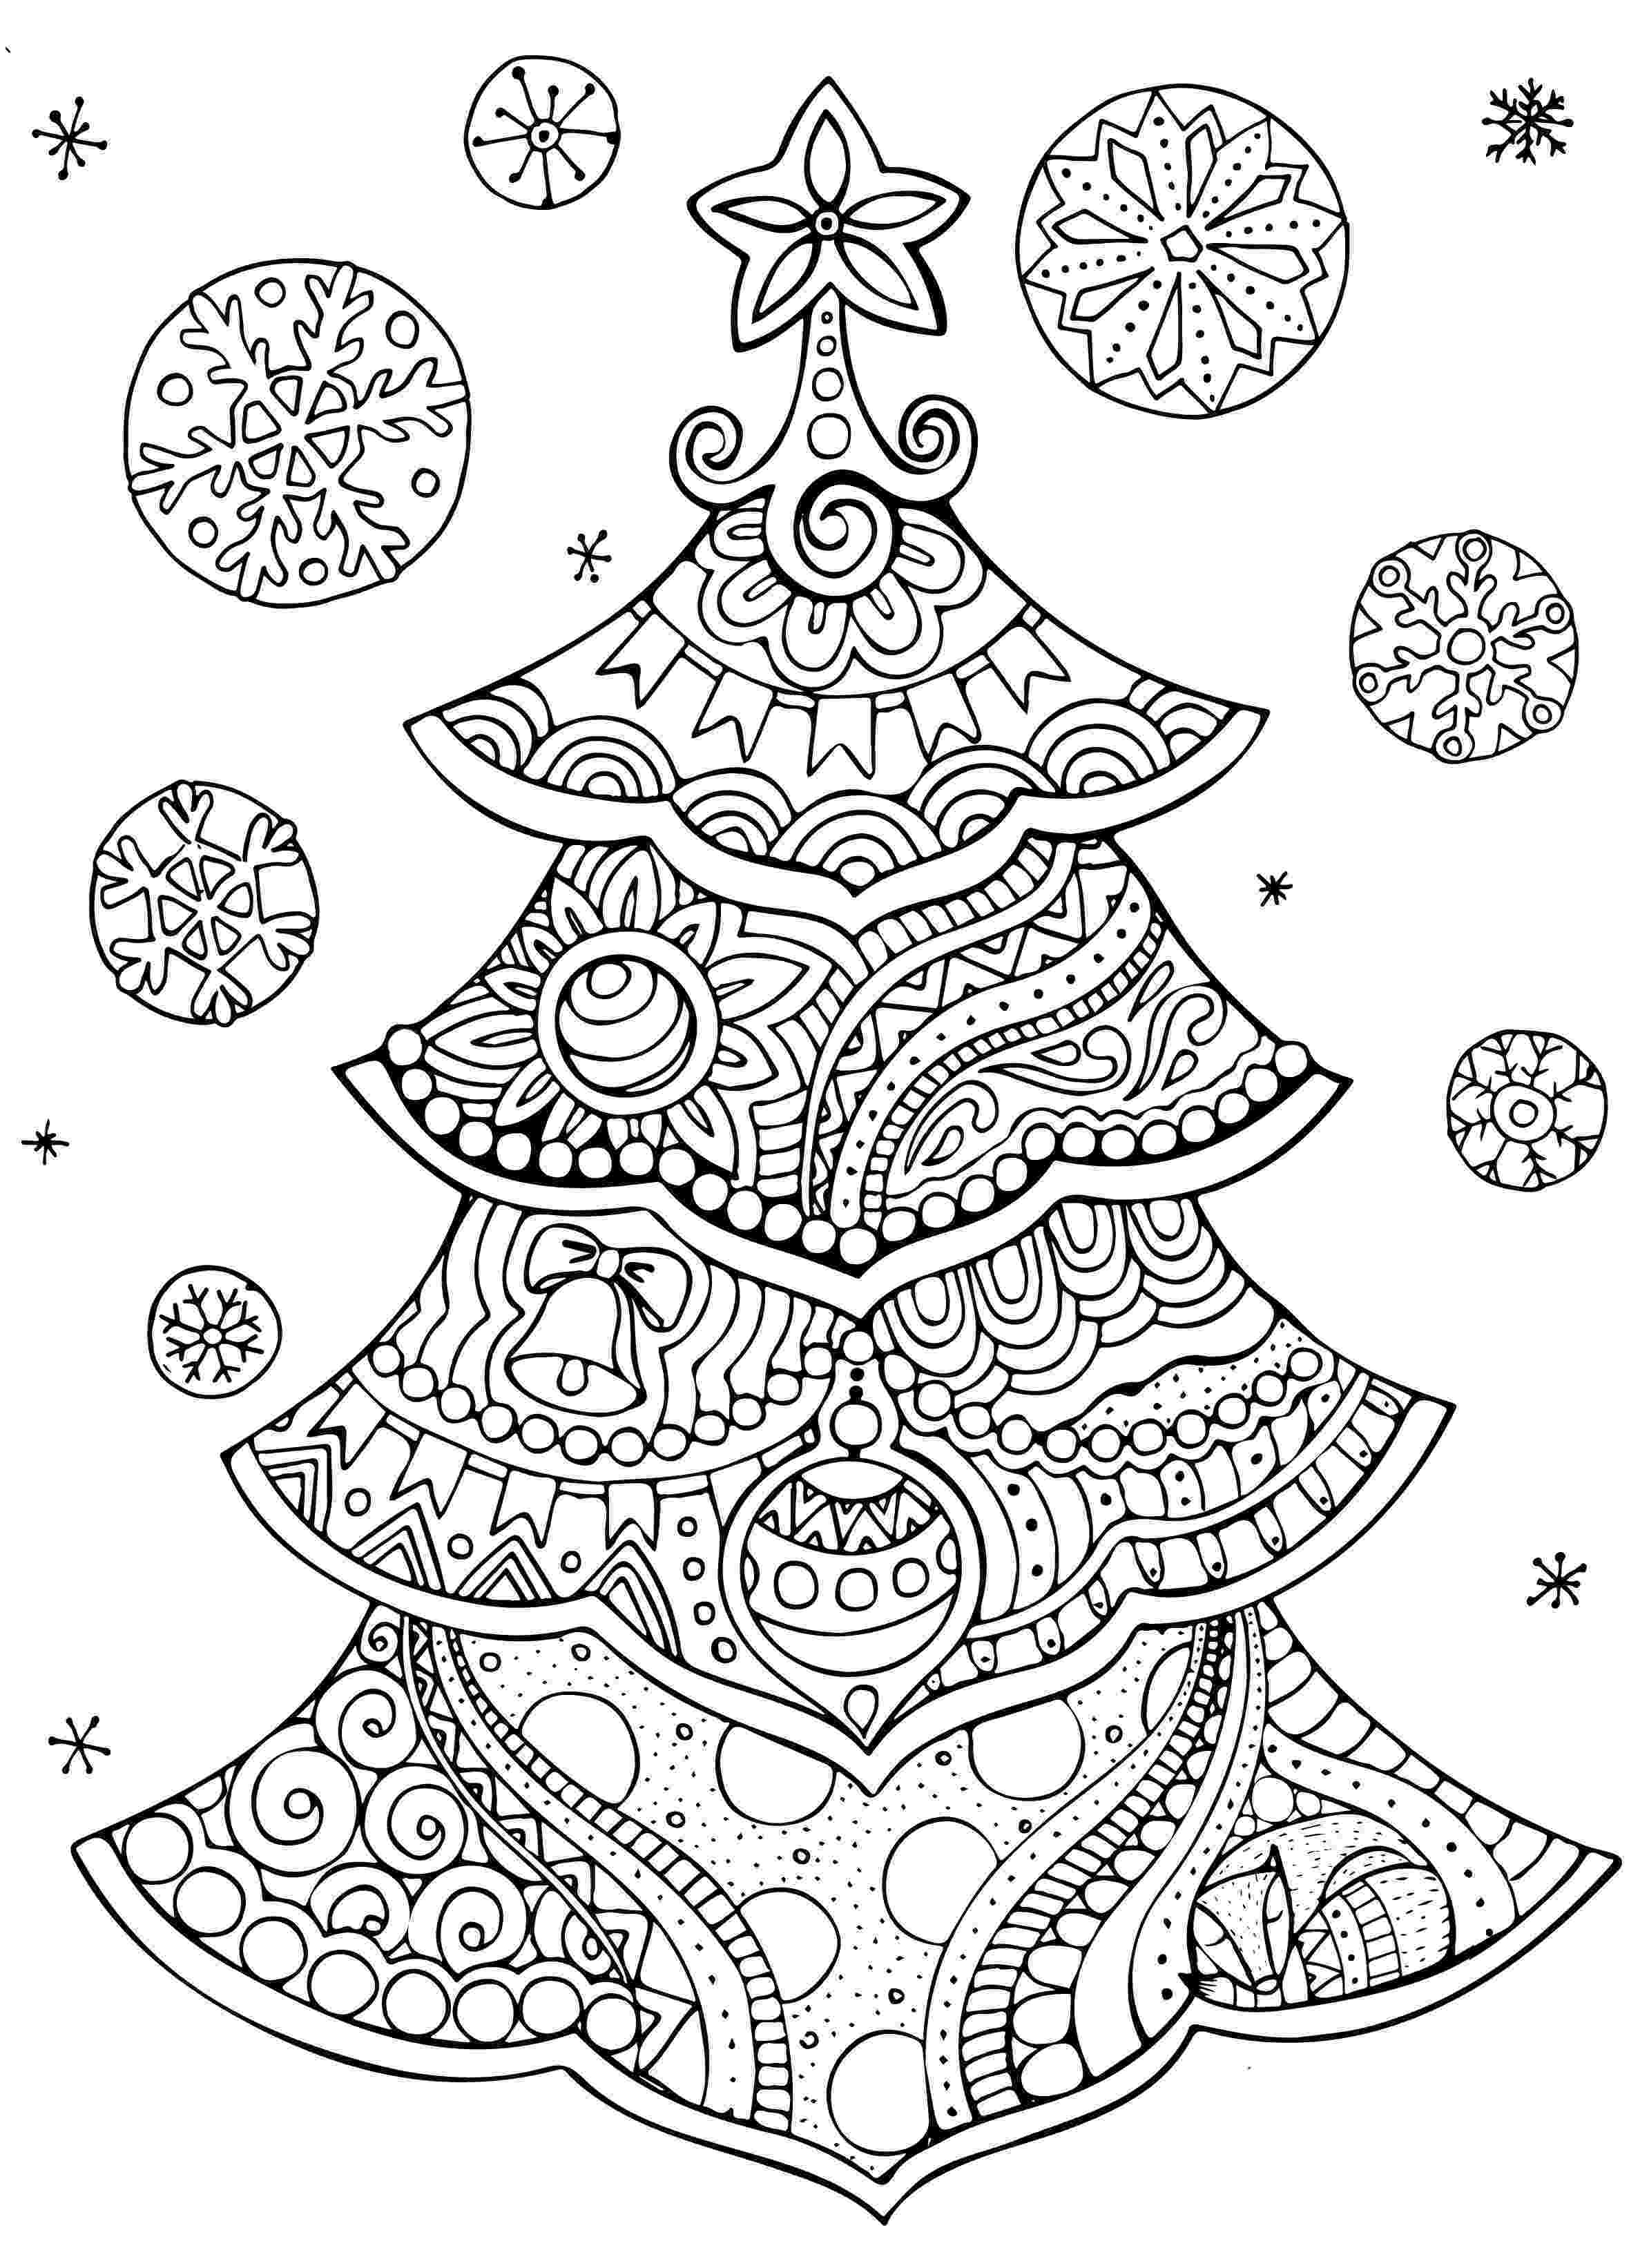 colouring pages christmas free wreath coloring pages download and print for free christmas pages colouring free